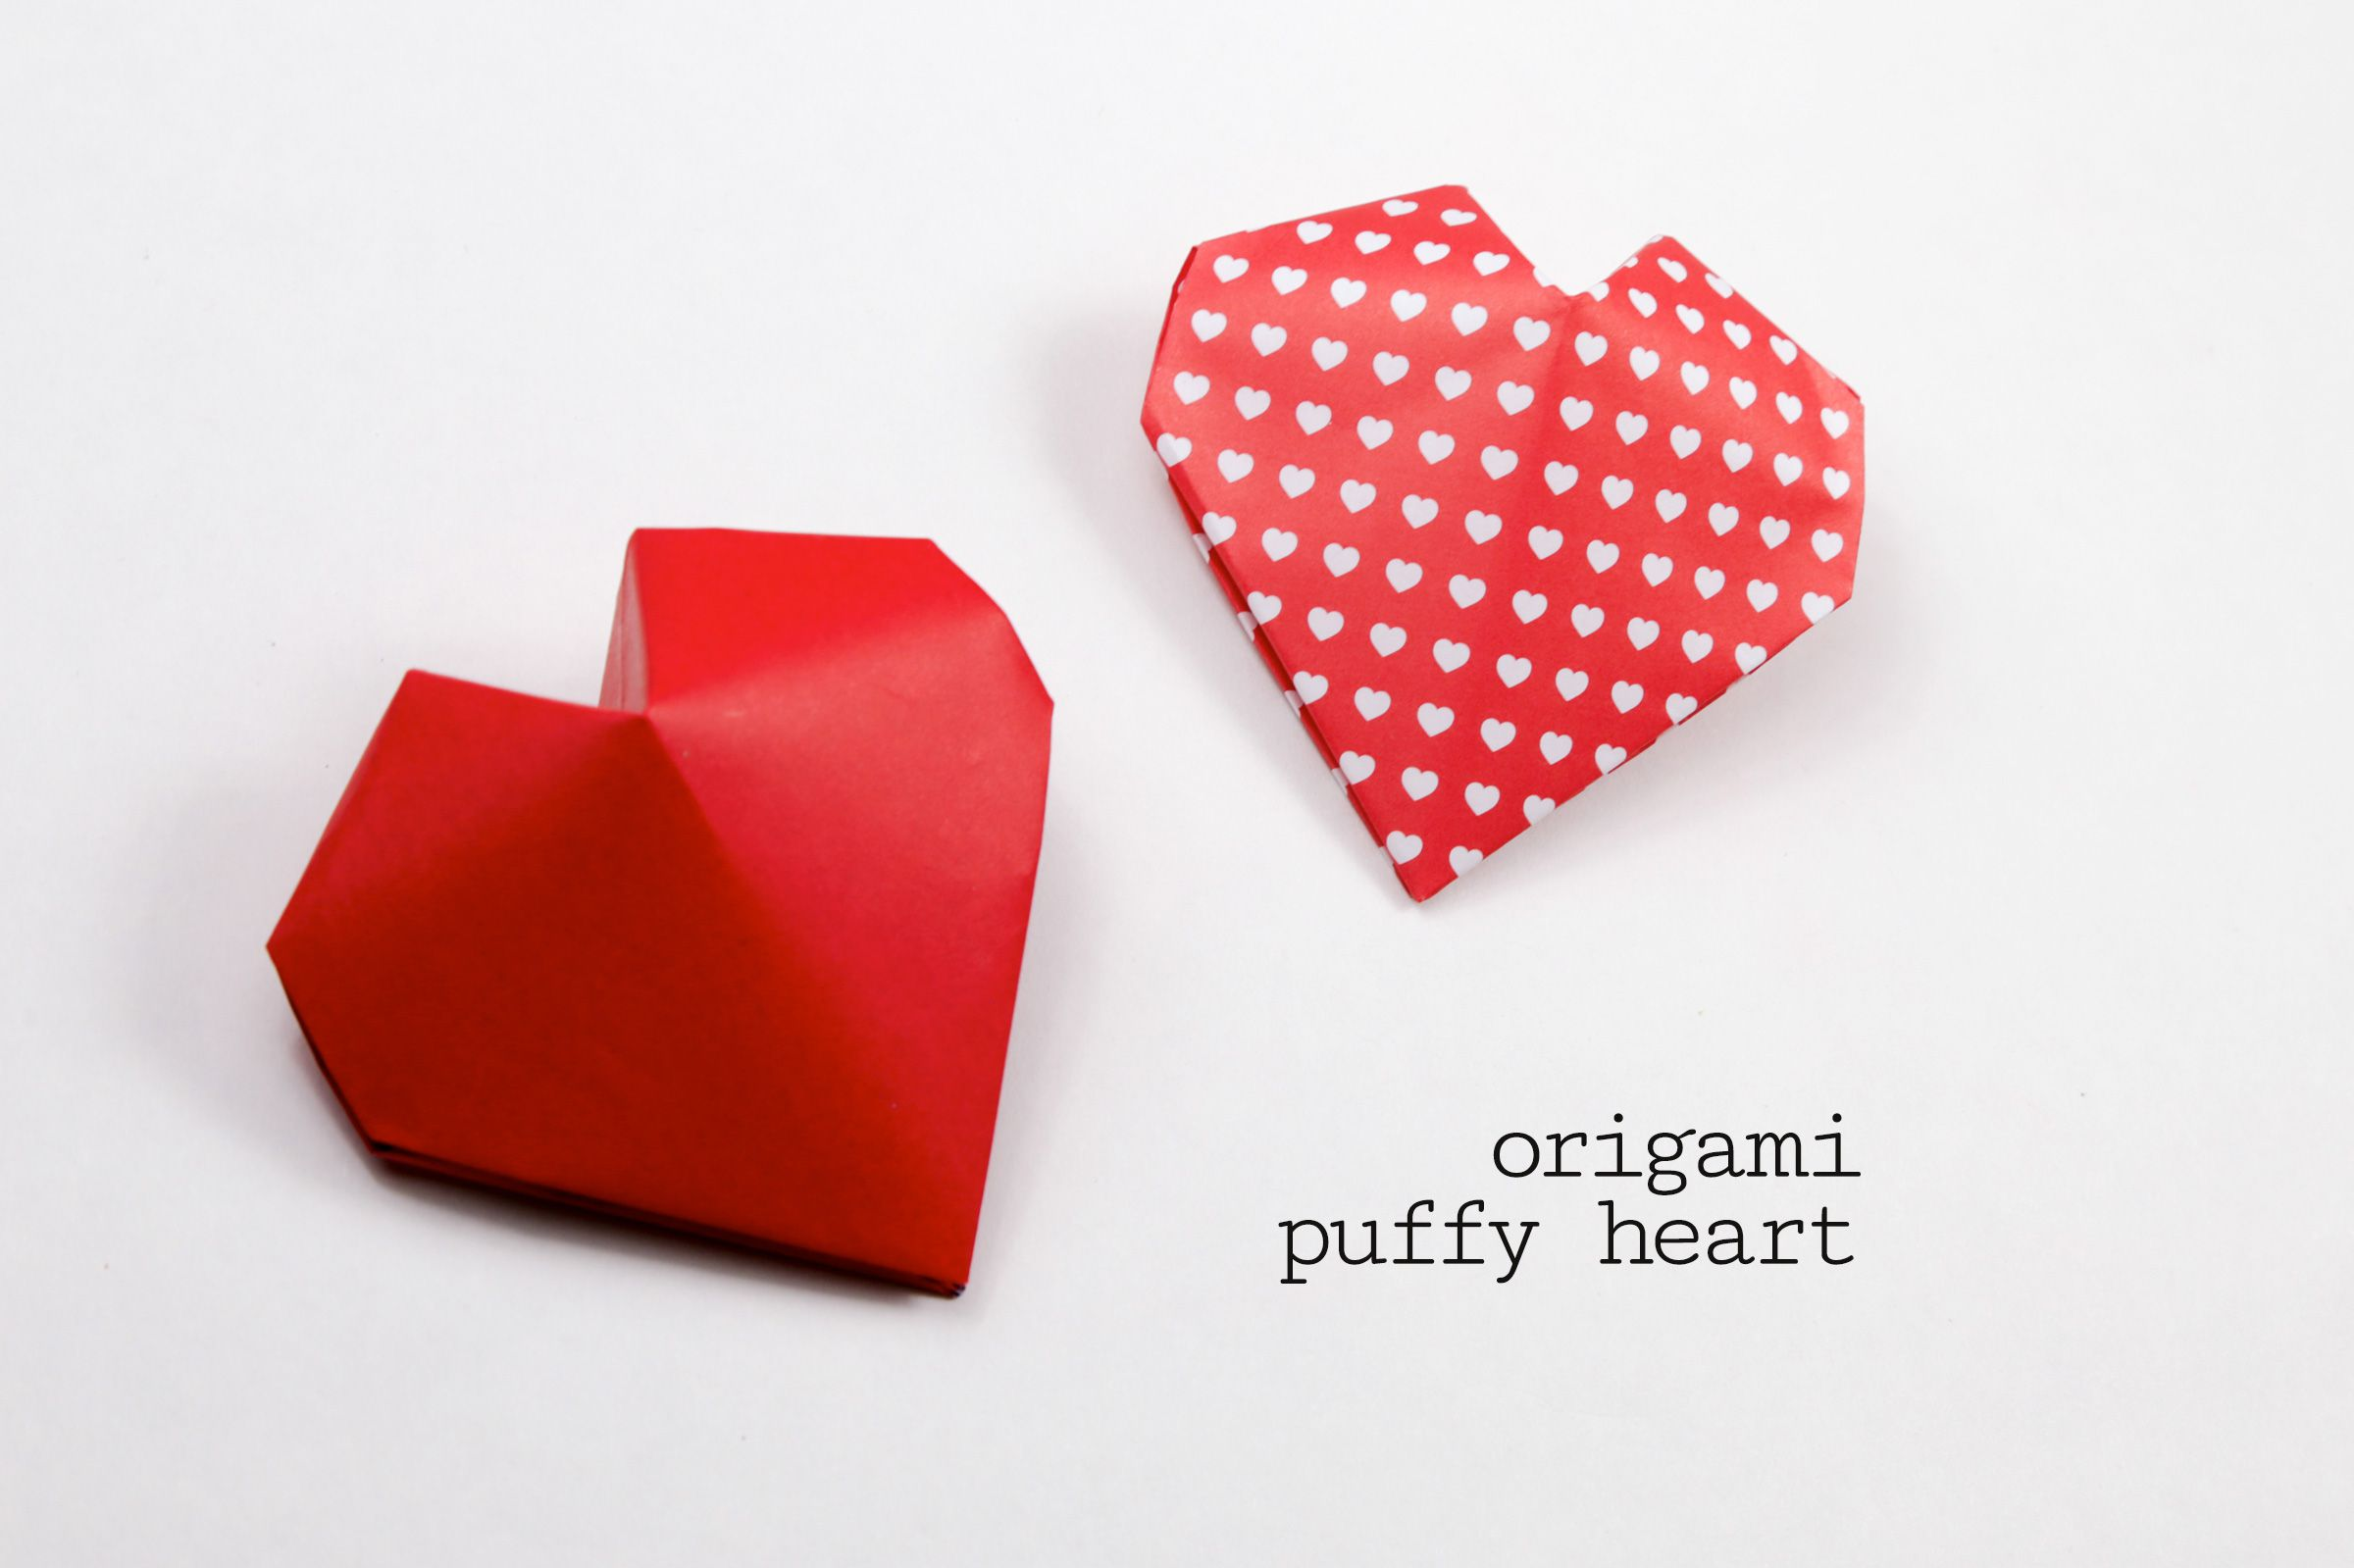 Origami Puffy Heart Instructions - photo#8